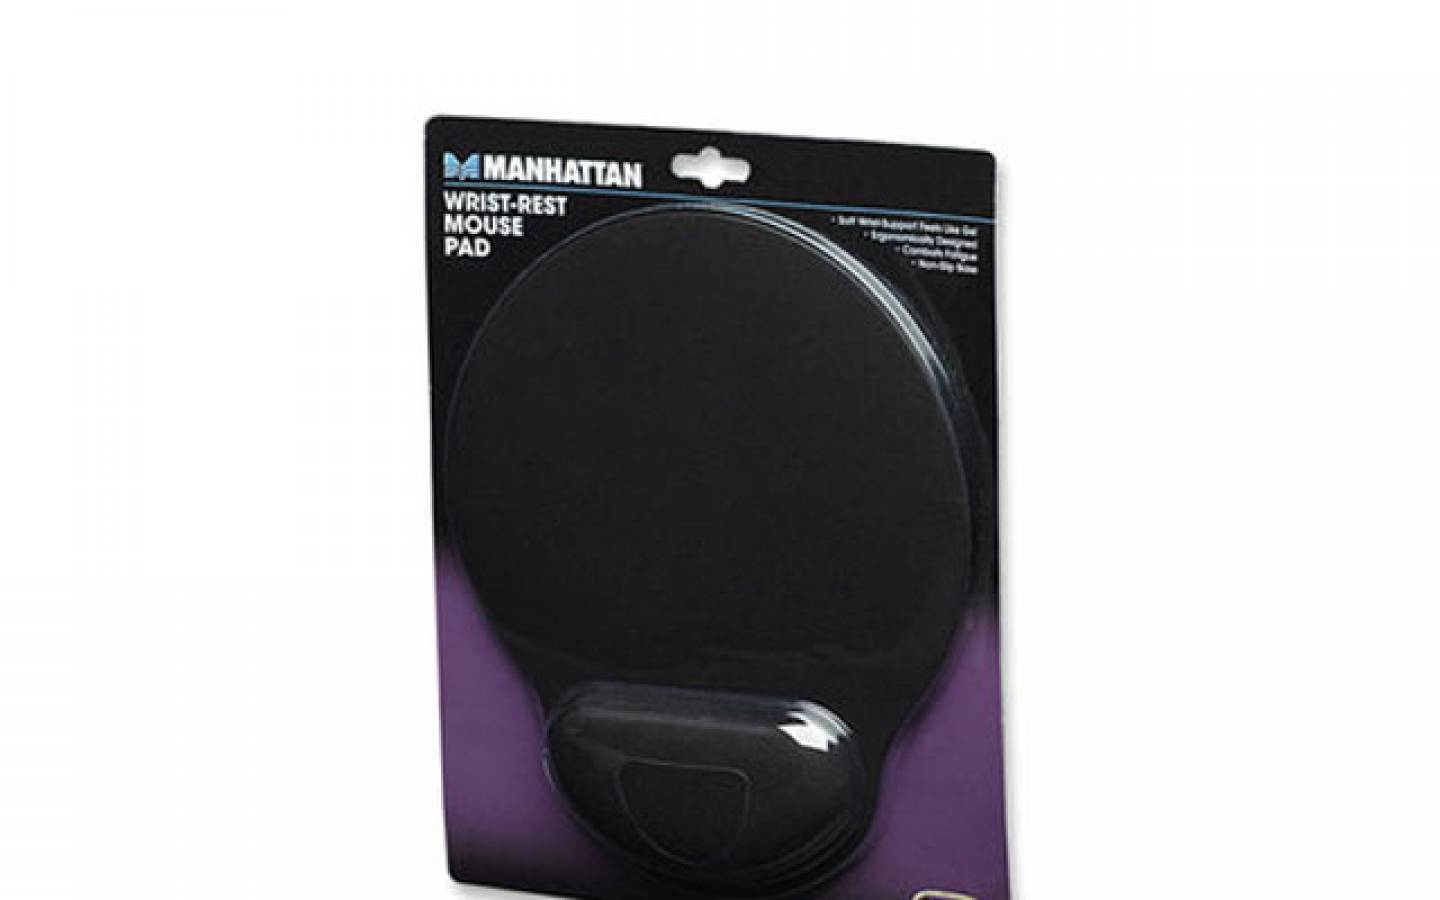 Pad Mouse Gel Negro Manhattan